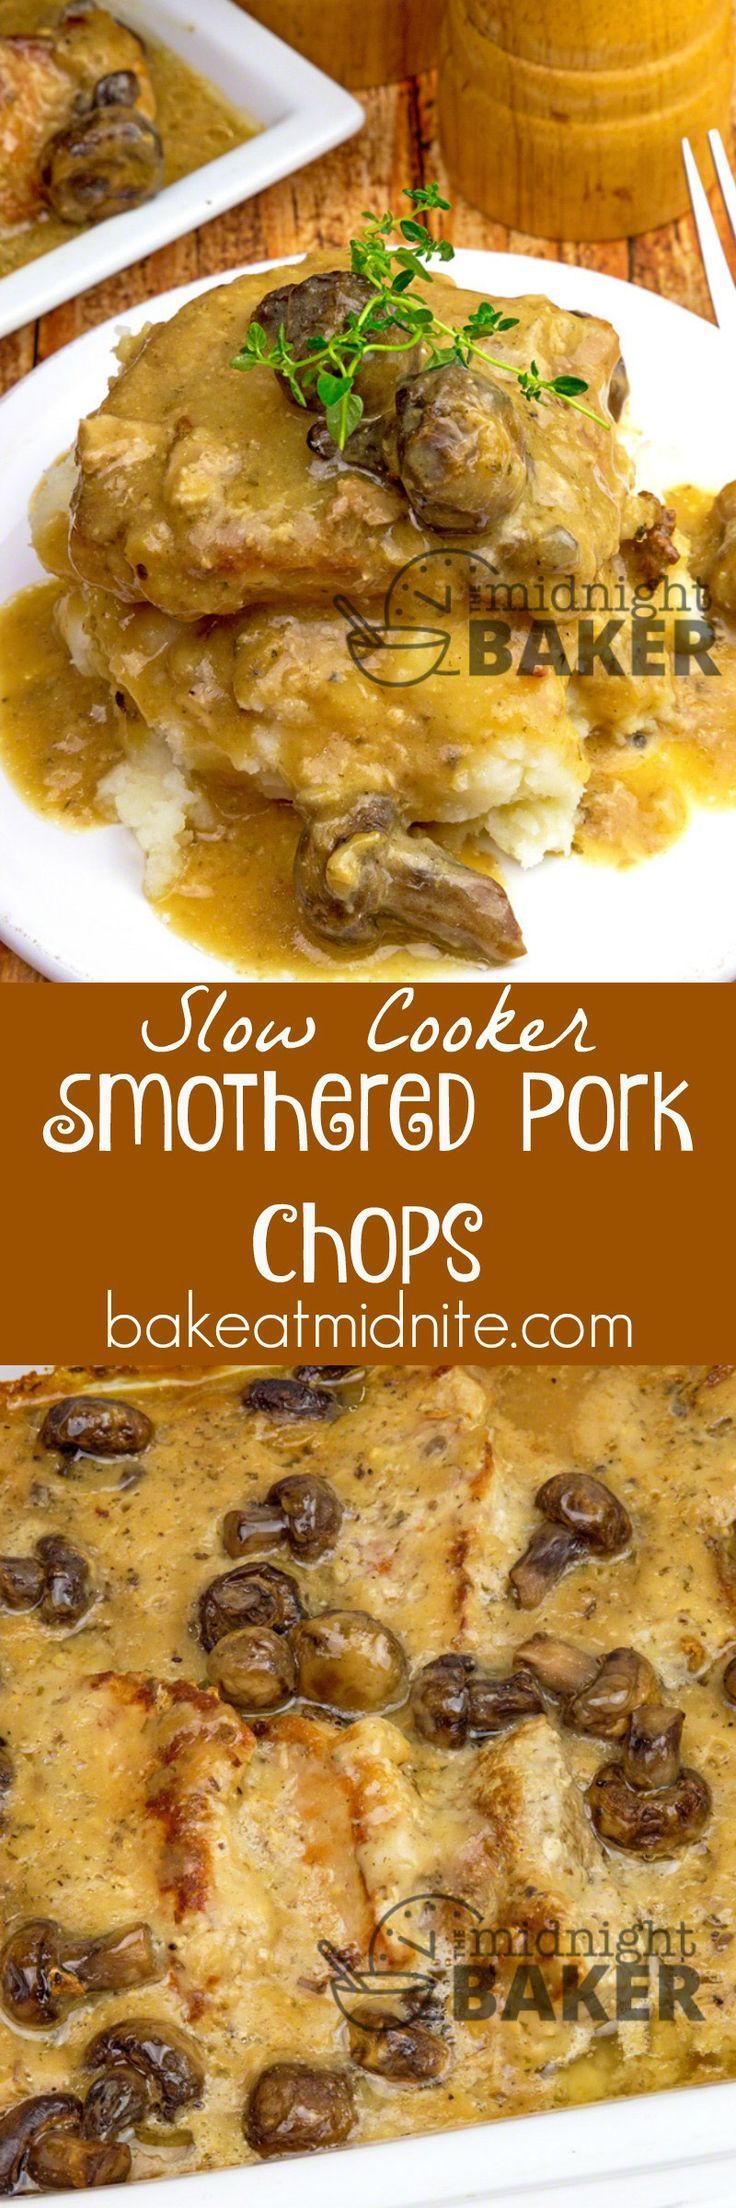 Pork chops smothered in an awesome gravy. Easy to make in the slow cooker.